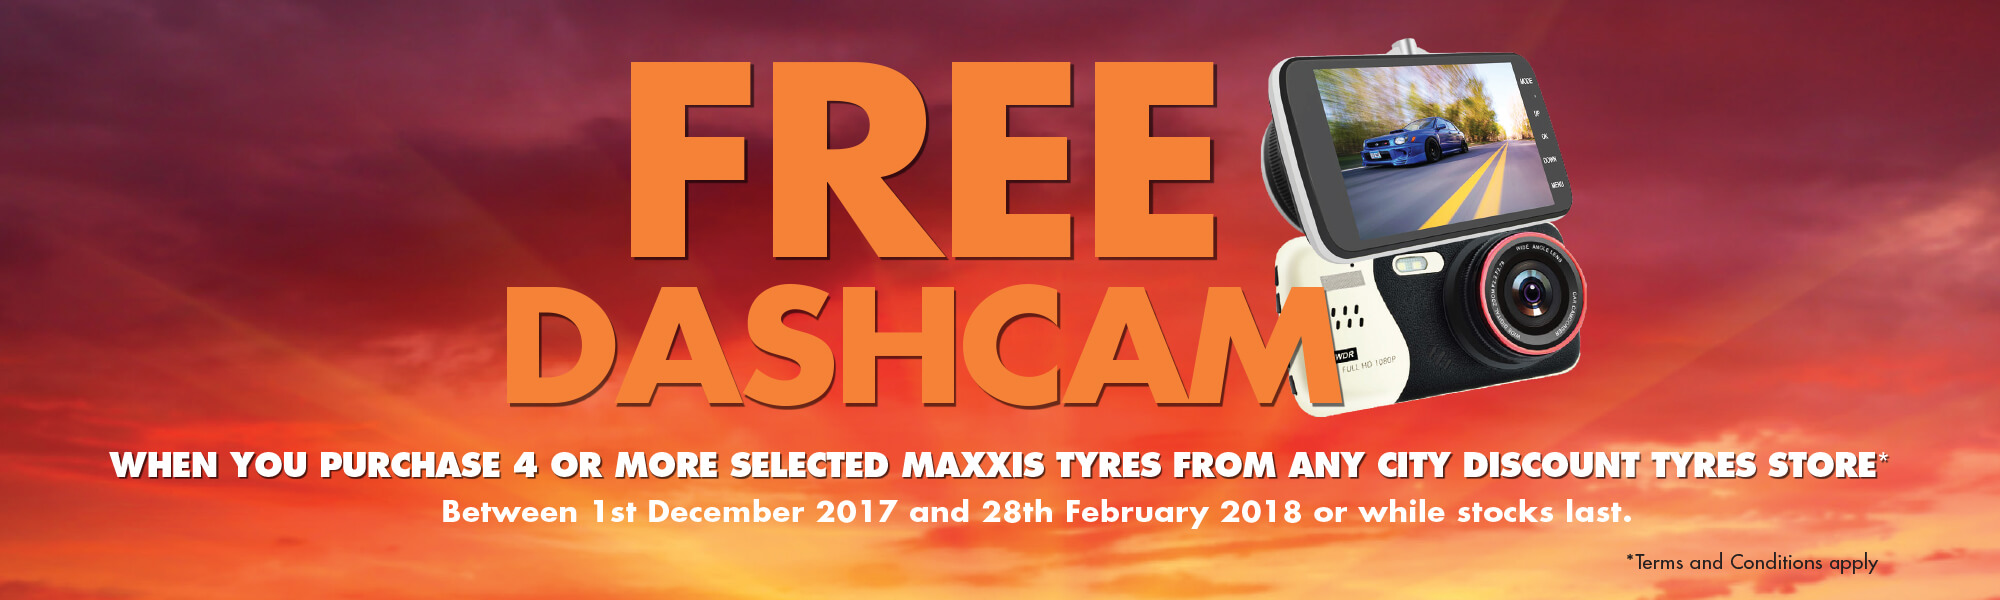 Maxxis free dashcam